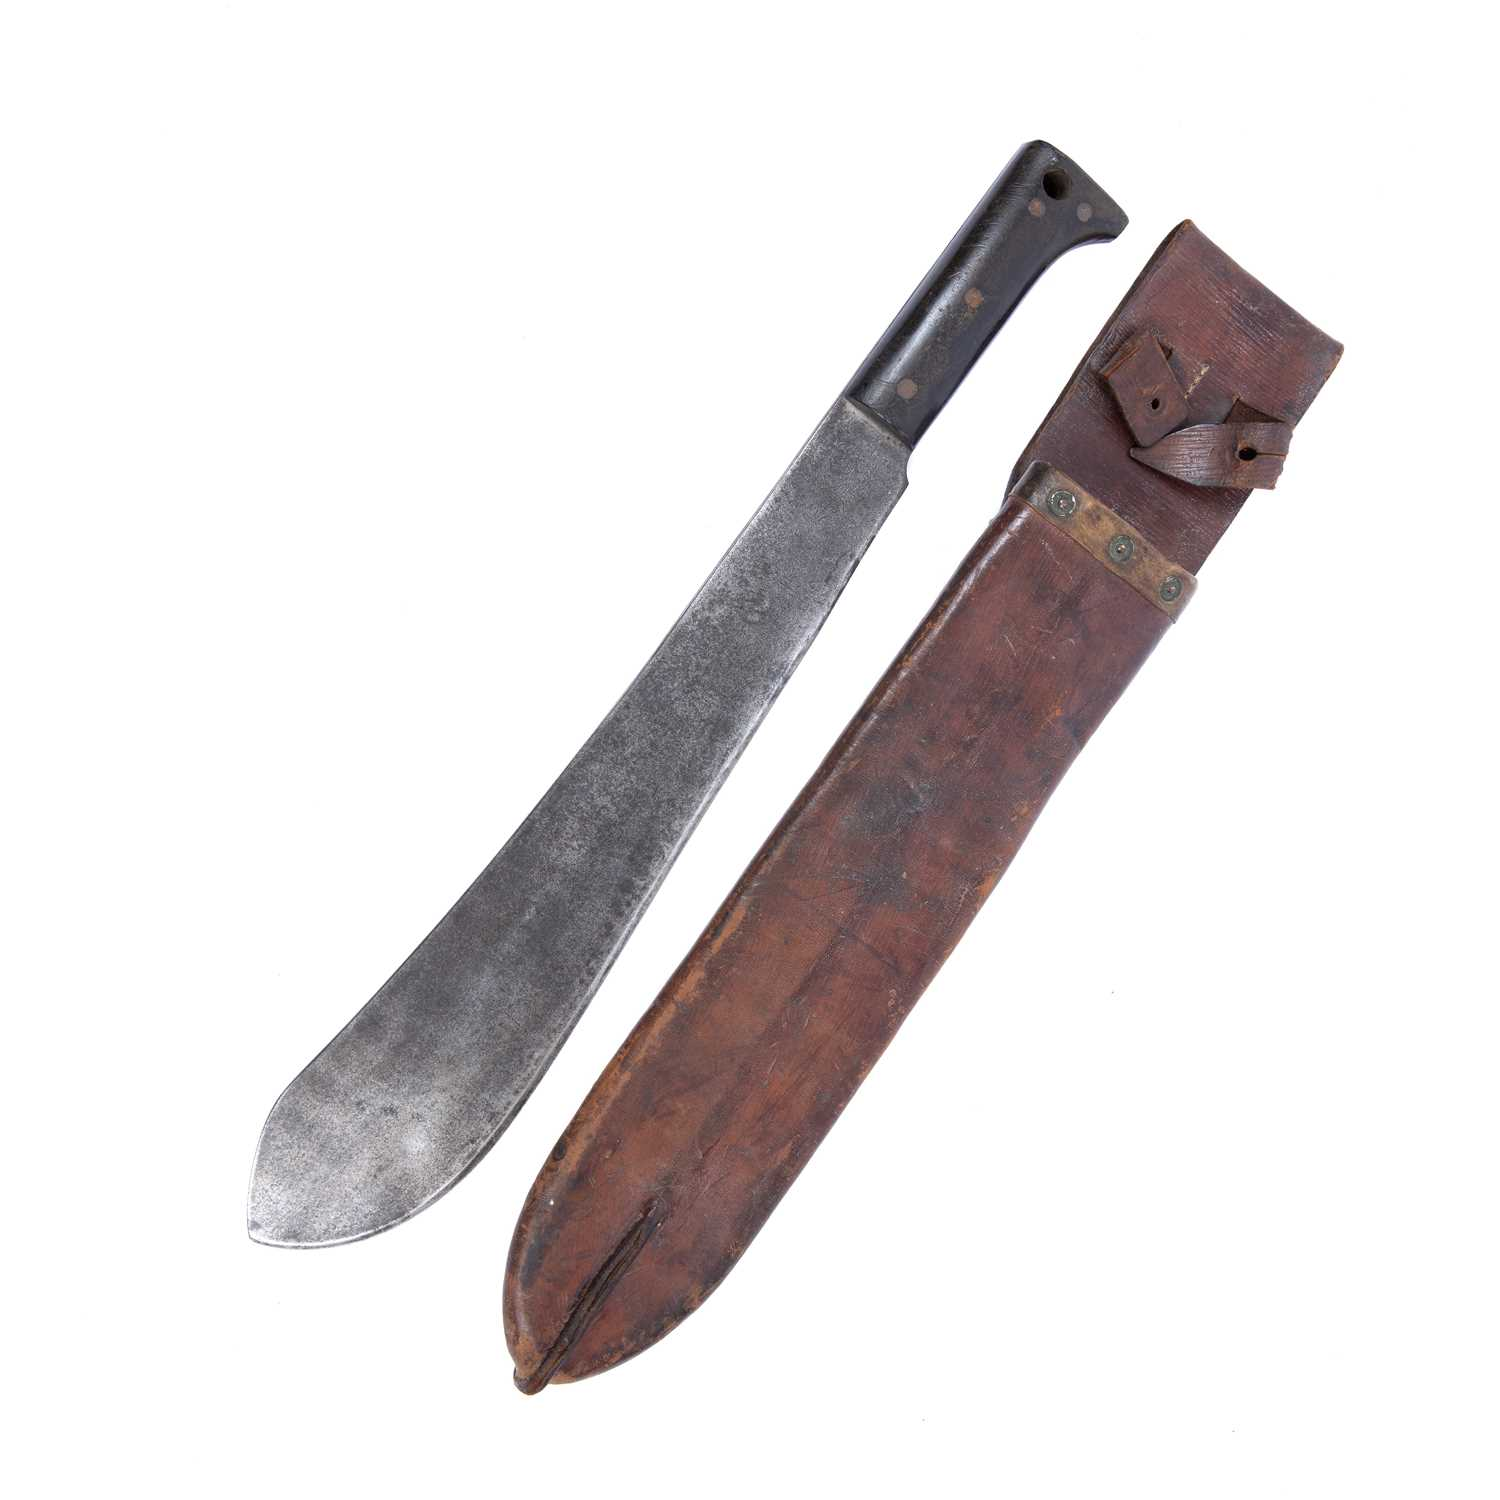 A WWII US army machete by Legitimus & Collins, no. 1250, with ebonised handle and leather